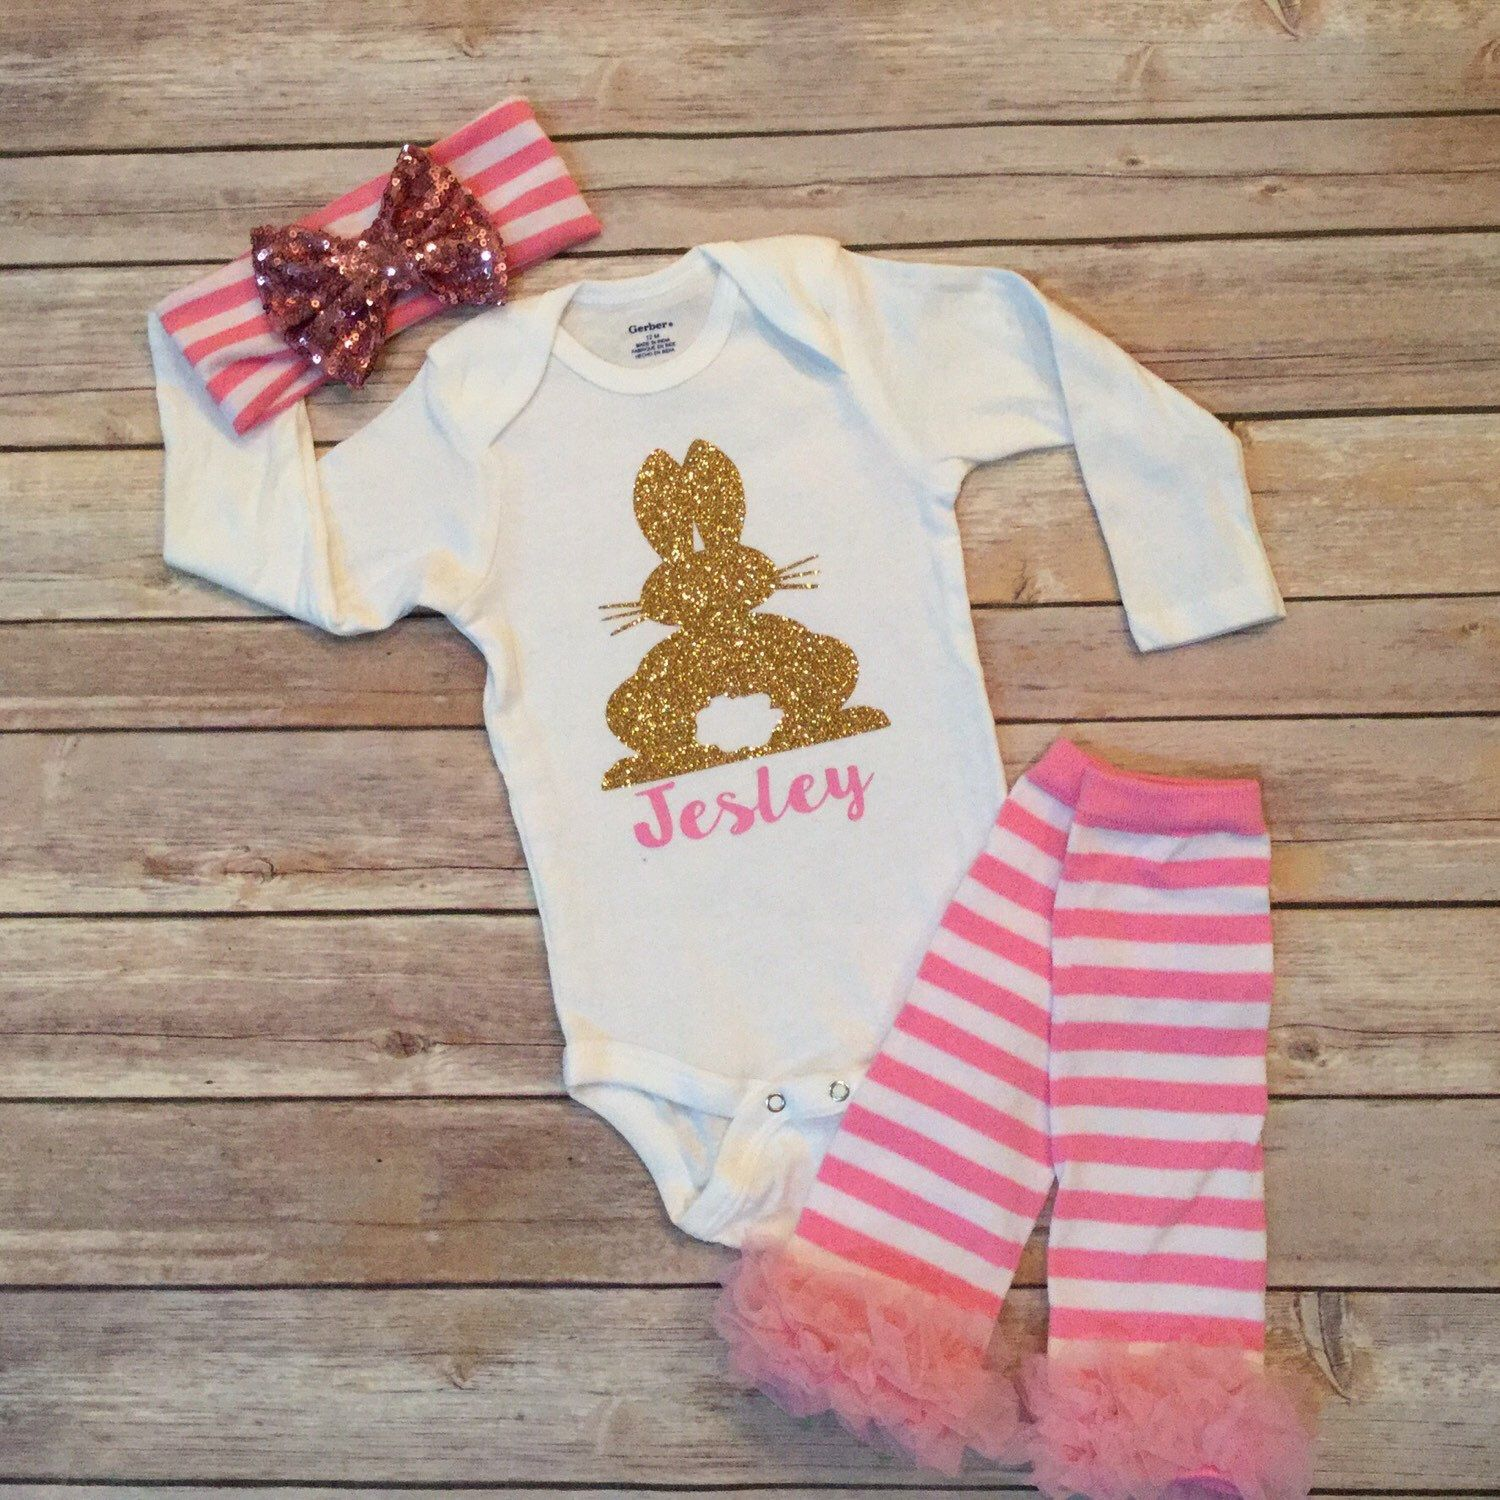 Baby Girl Outfit//Newborn Outfit// Baby Shower Gift// Newborn Baby Outfit//Baby Girl Easter Outfit  //take home outfit by ShopDoubleH on Etsy https://www.etsy.com/listing/268952334/baby-girl-outfitnewborn-outfit-baby